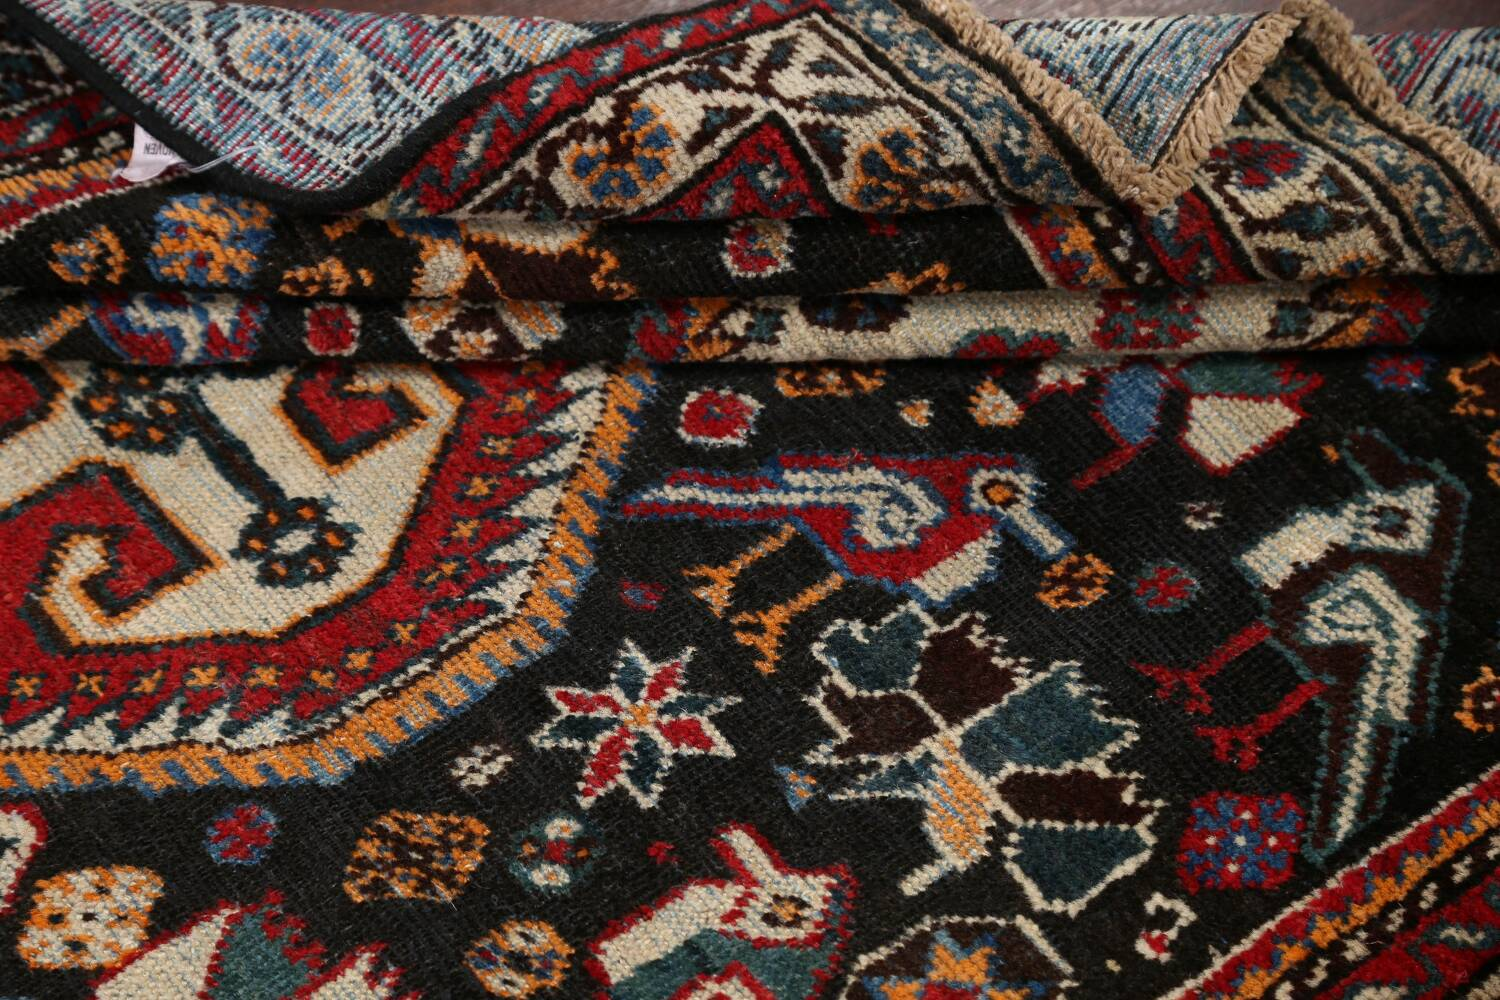 Antique Pre-1900 Tribal Bakhtiari Persian Area Rug 4x5 image 15